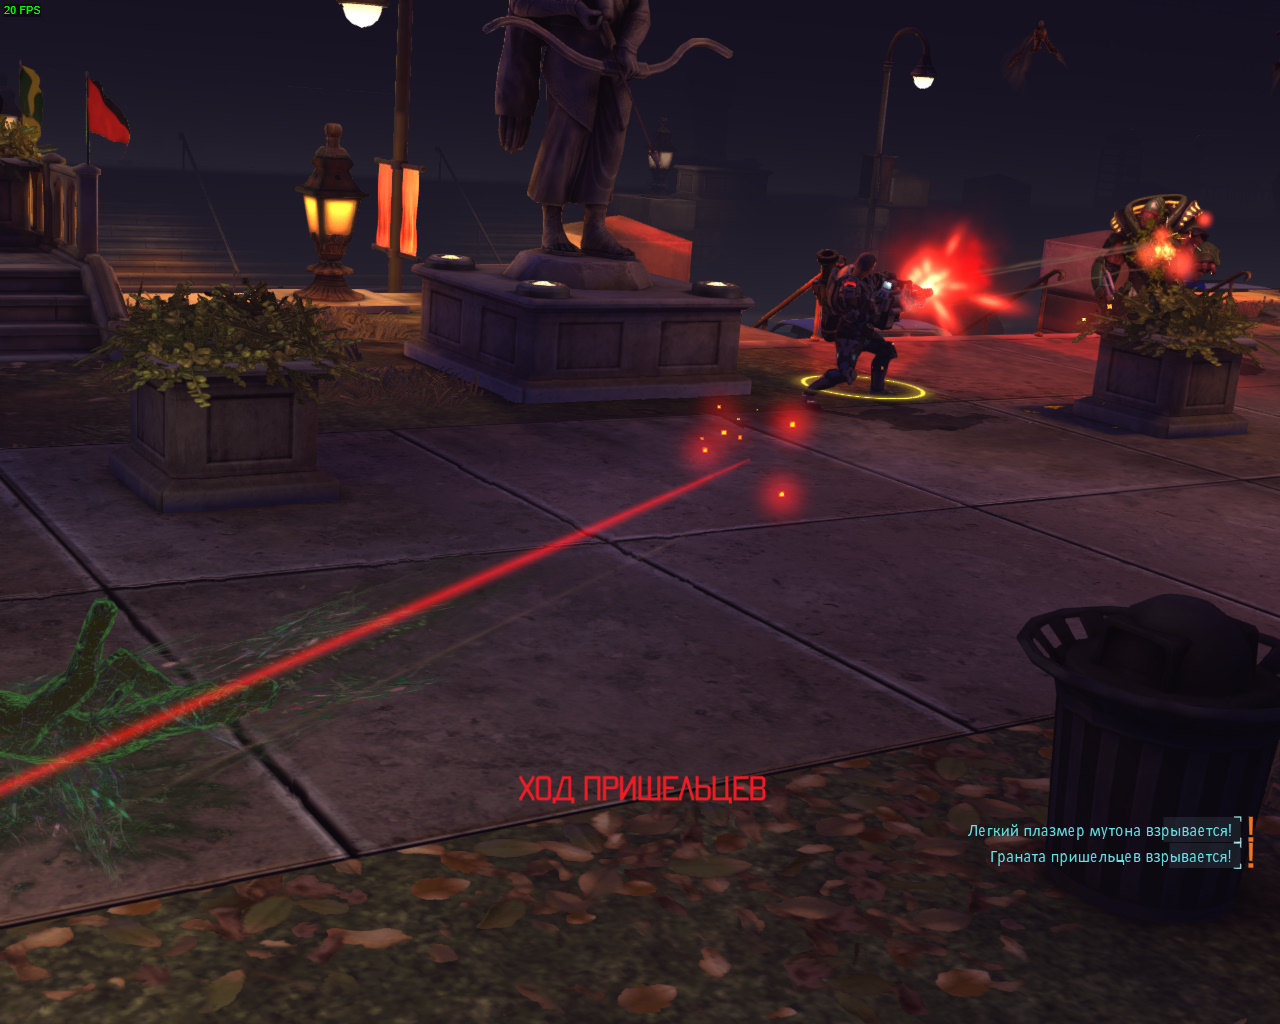 XComGame 2016-08-09 17-56-01-220.jpg - XCOM: Enemy Unknown